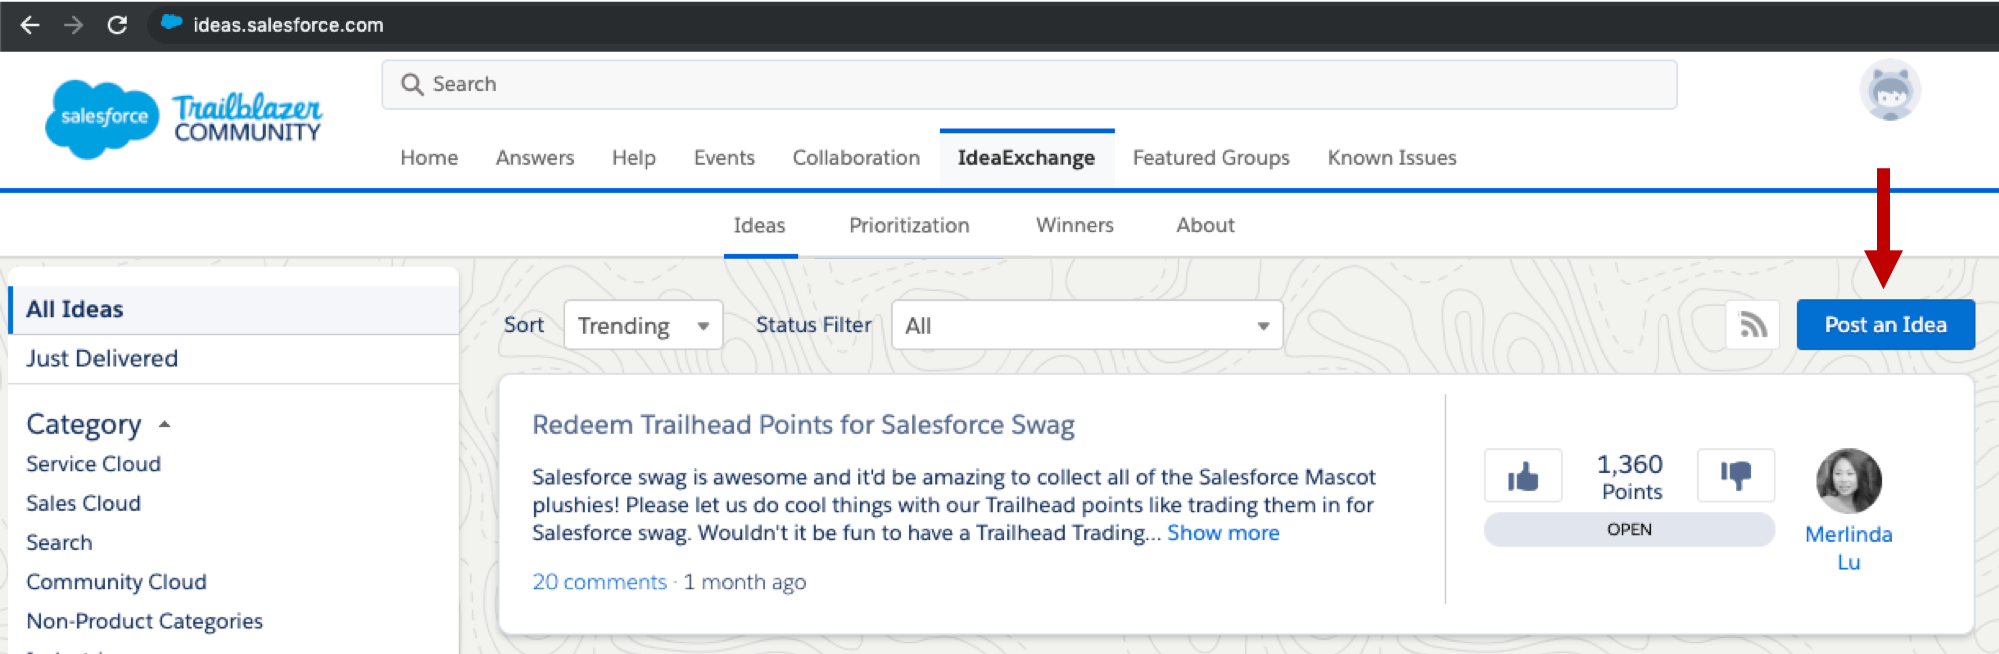 The IdeaExchange homepage at ideas.salesforce.com shows trending ideas, category filters, and the Post an Idea button